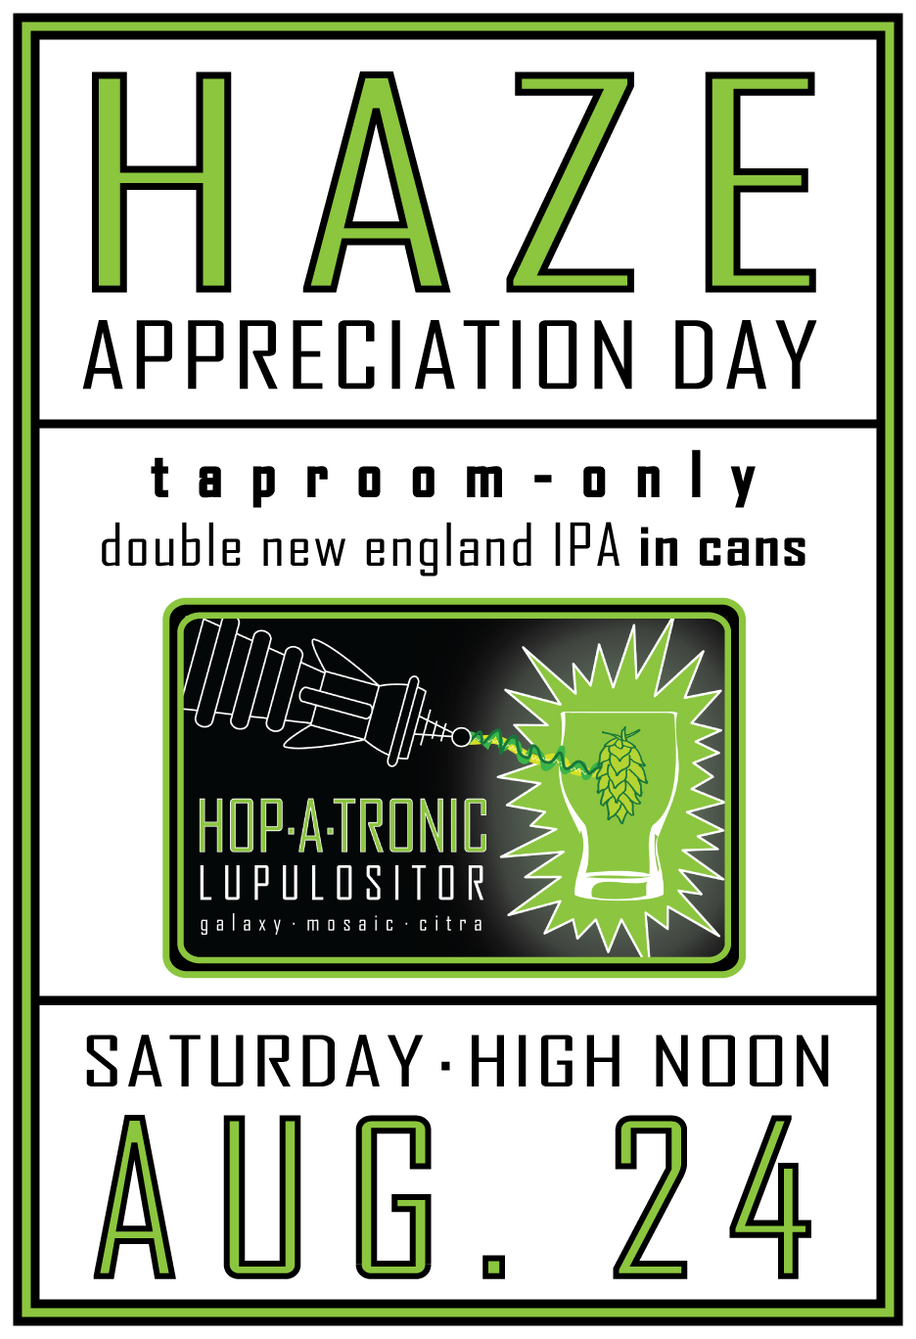 Hop-A-Tronic Release Party: This Saturday High Noon